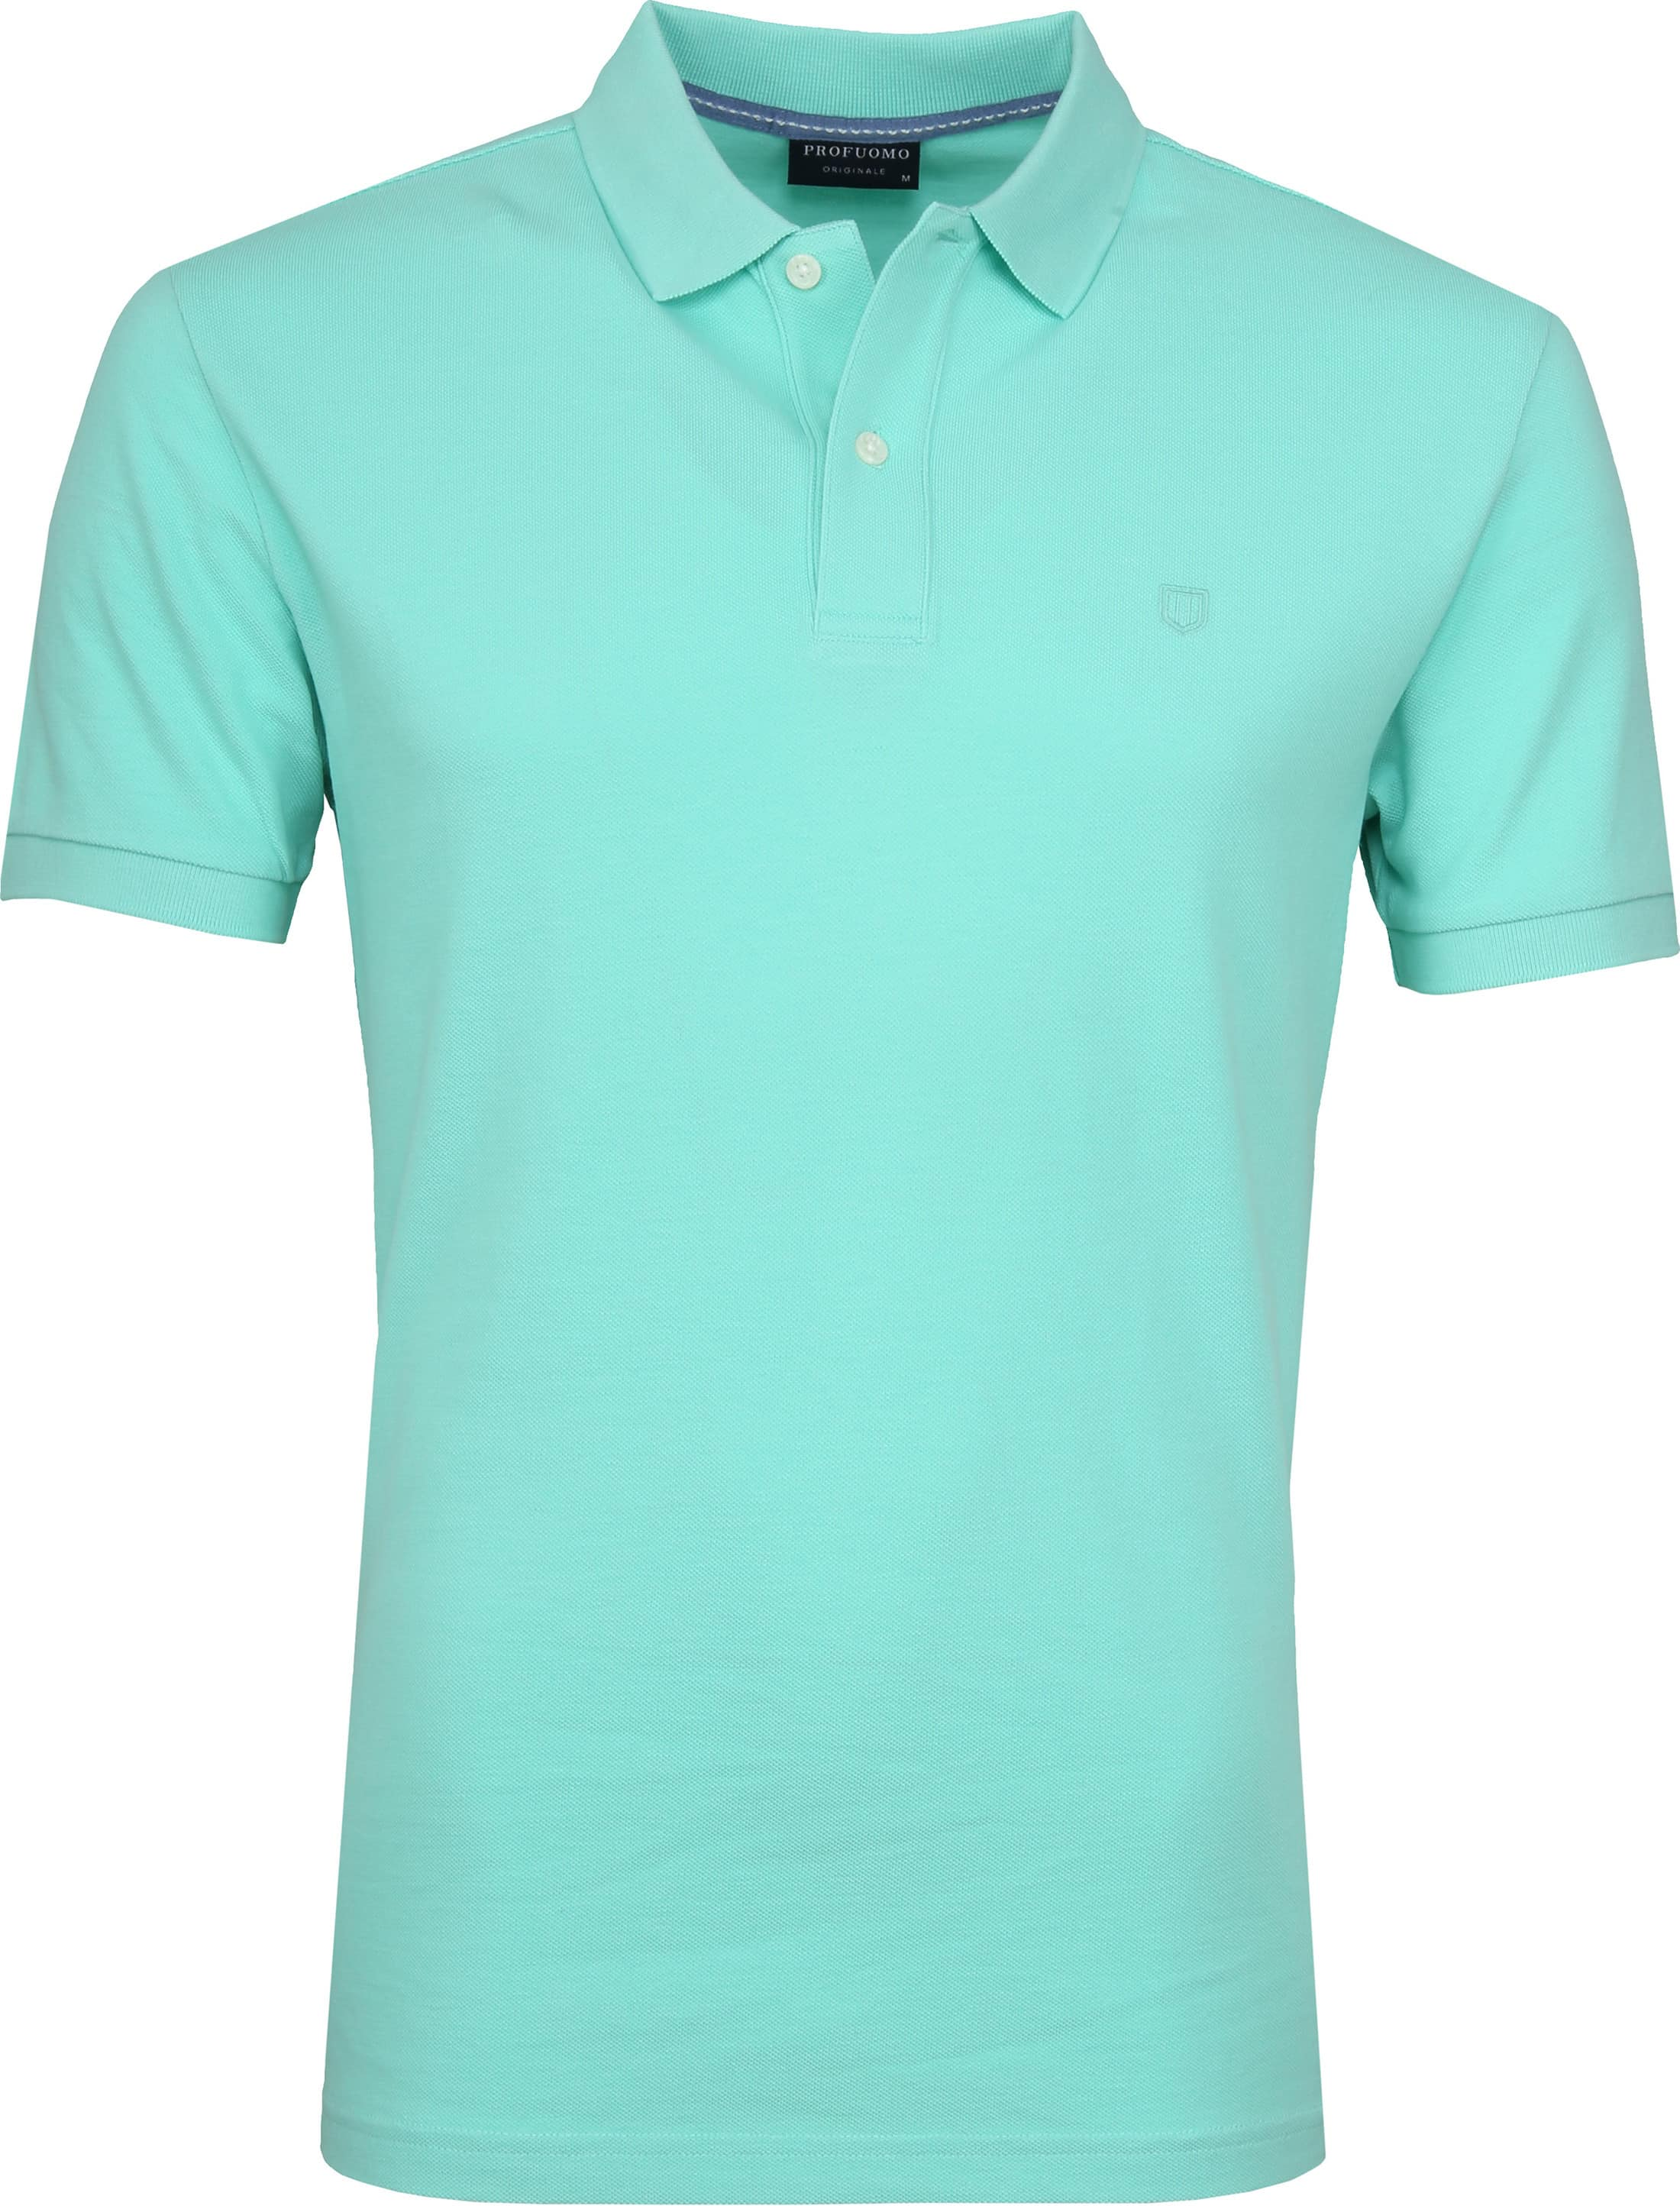 Profuomo Short Sleeve Polo Mint foto 0